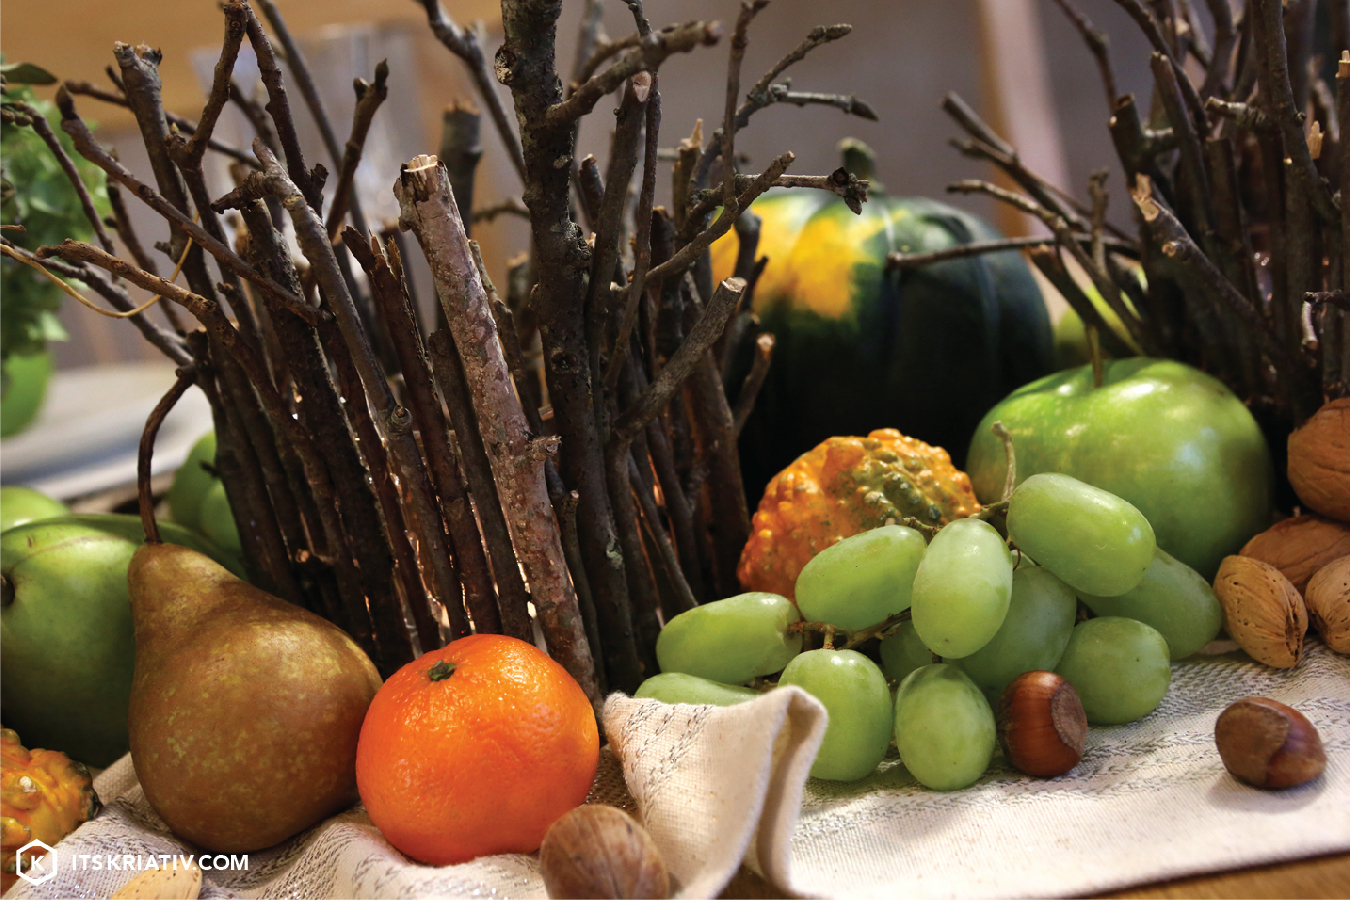 13_Nov_Decor-Thanksgiving-Centerpiece-06.jpg